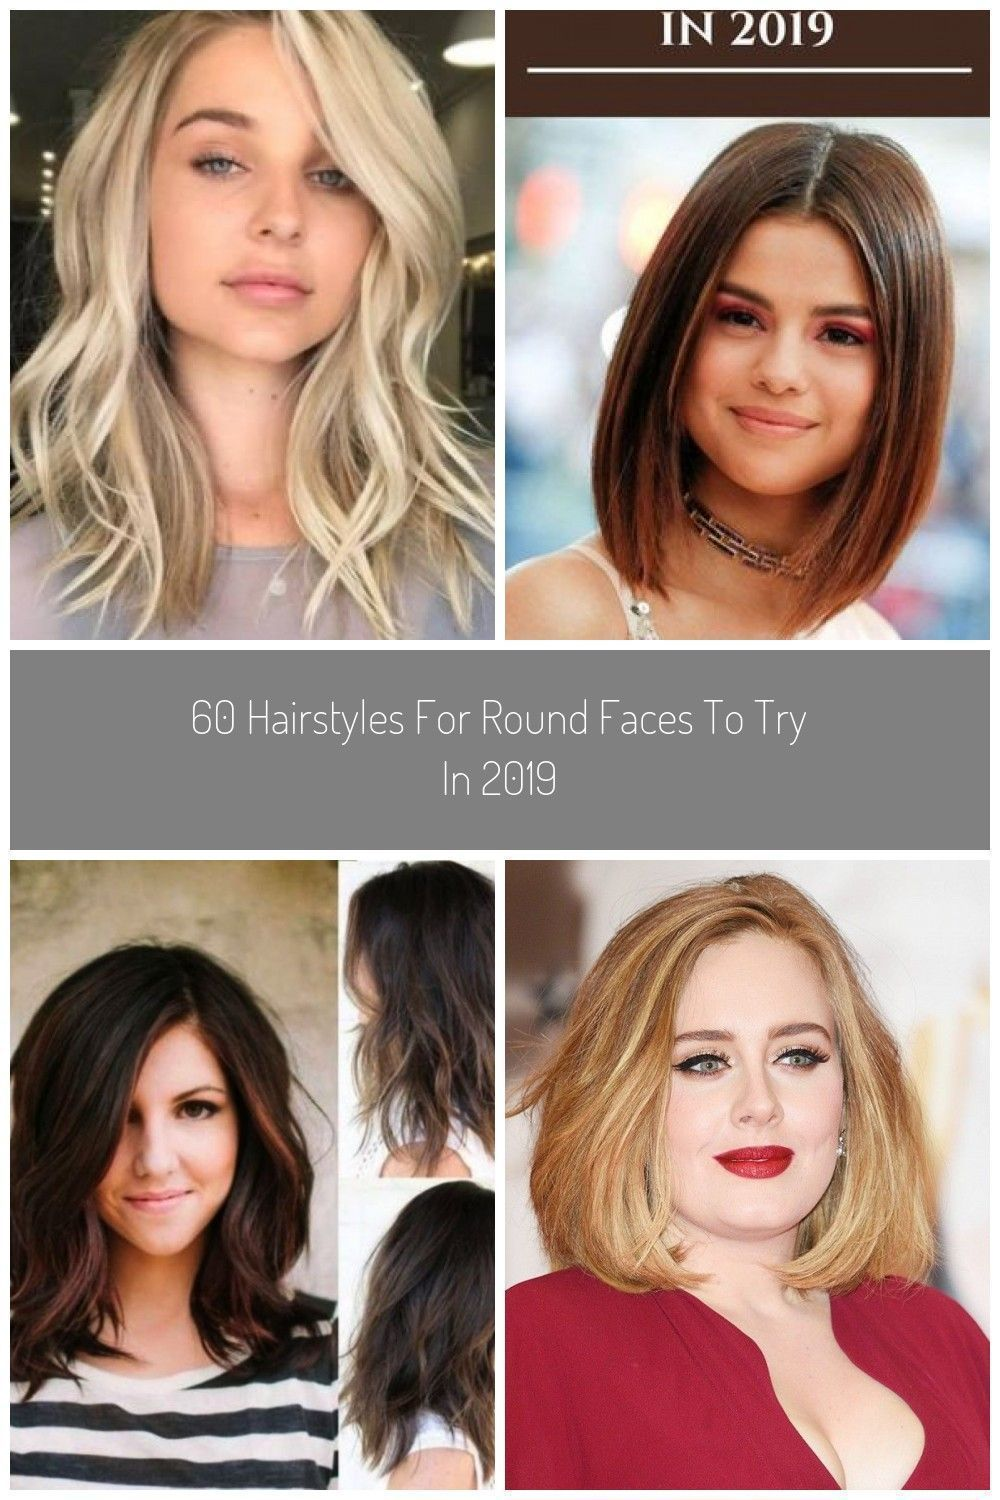 49 Trendy Haircut For Round Face Shape Thin Medium Lengths #haircut #hairstyles   Medium length haircut for round faces  Musallah Blog  49 Trendy Haircut For Round Face Shape Thin Medium Lengths #haircut #hairstyles   Medium length haircut for round faces  #Face #faces #haircut  The post 49 Trendy Haircut For Round Face Shape Thin Medium Lengths #haircut #hairstyles   Medium length haircut for round faces  Musallah Blog appeared first on Star Elite.